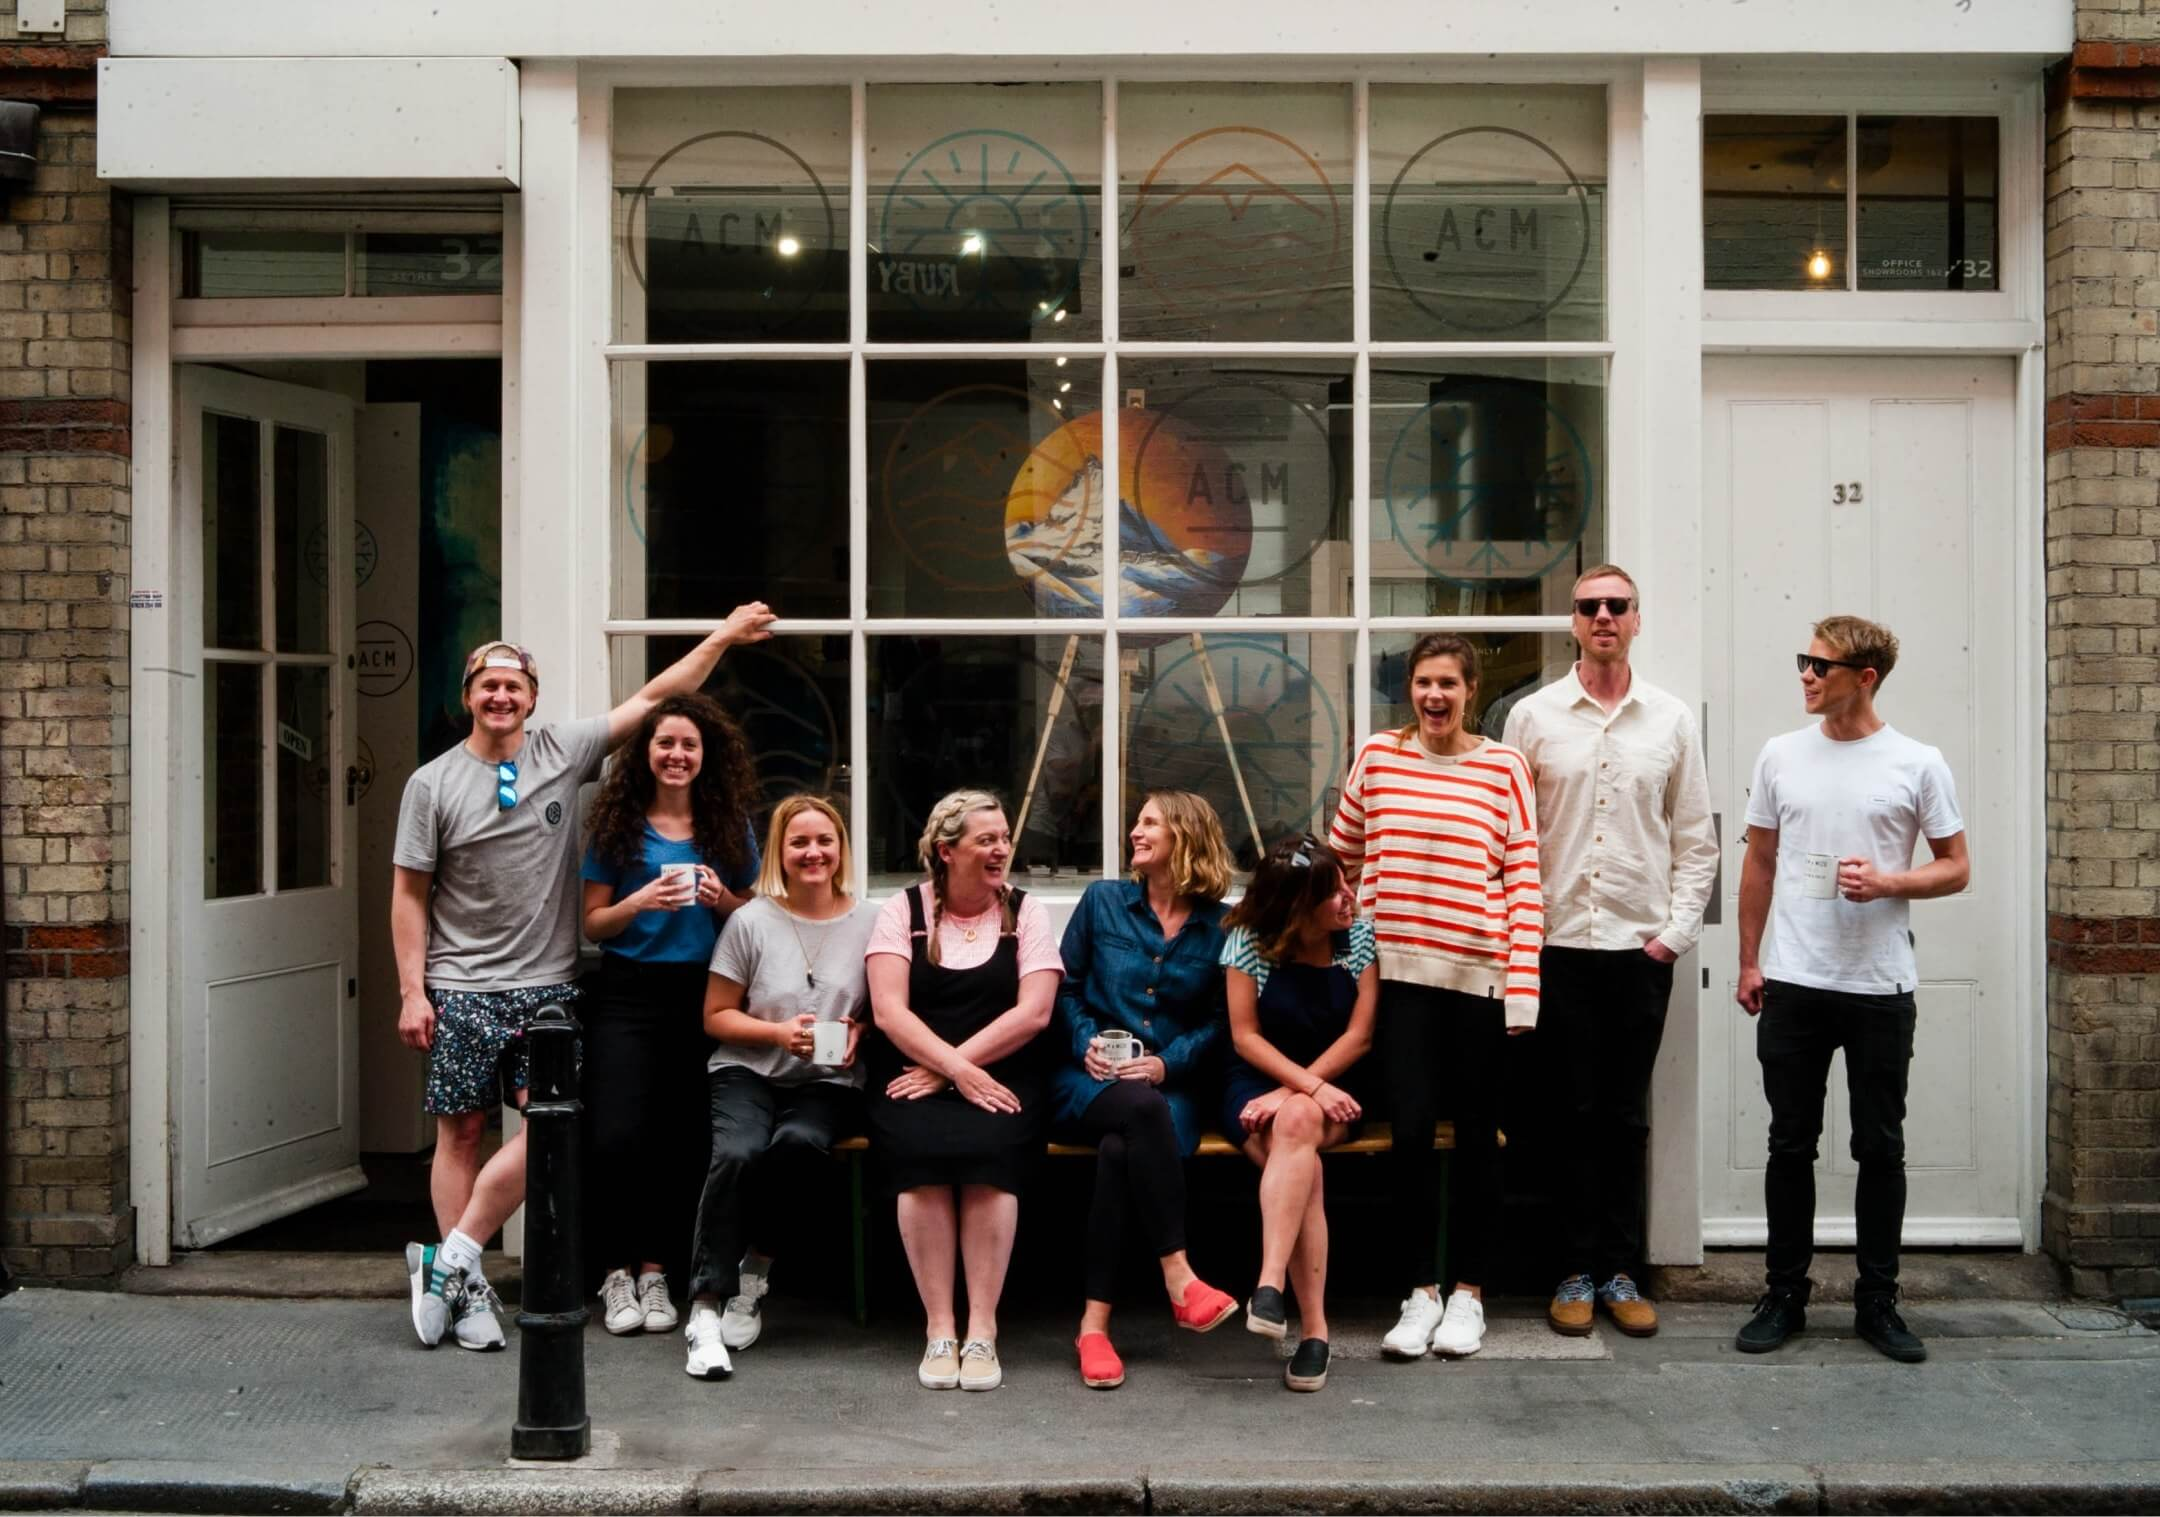 Team at All Conditions Media by Hamish Duncan on Leica M Series